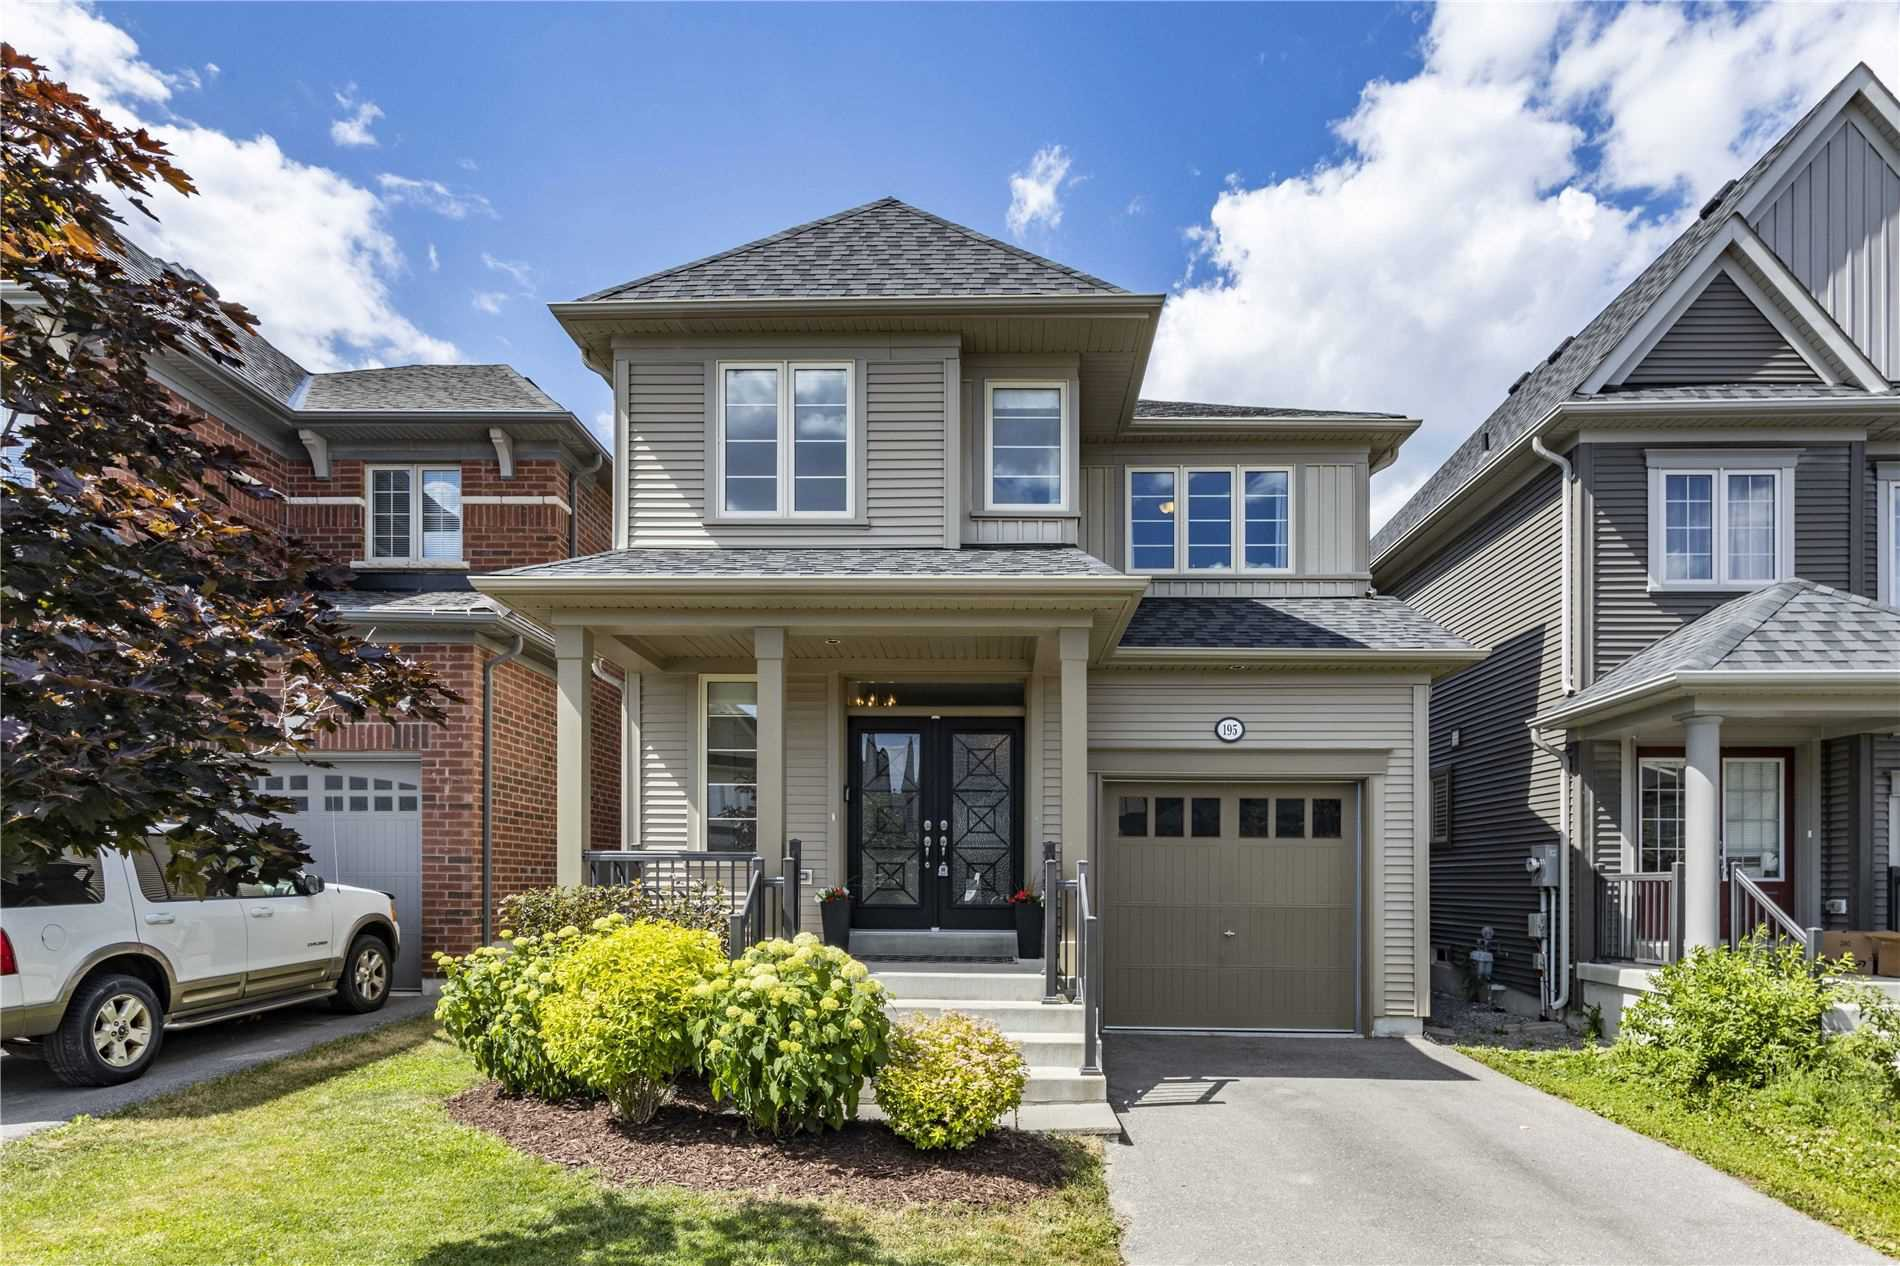 Main Photo: 195 Ice Palace Crescent in Oshawa: Windfields House (2-Storey) for sale : MLS®# E4810664